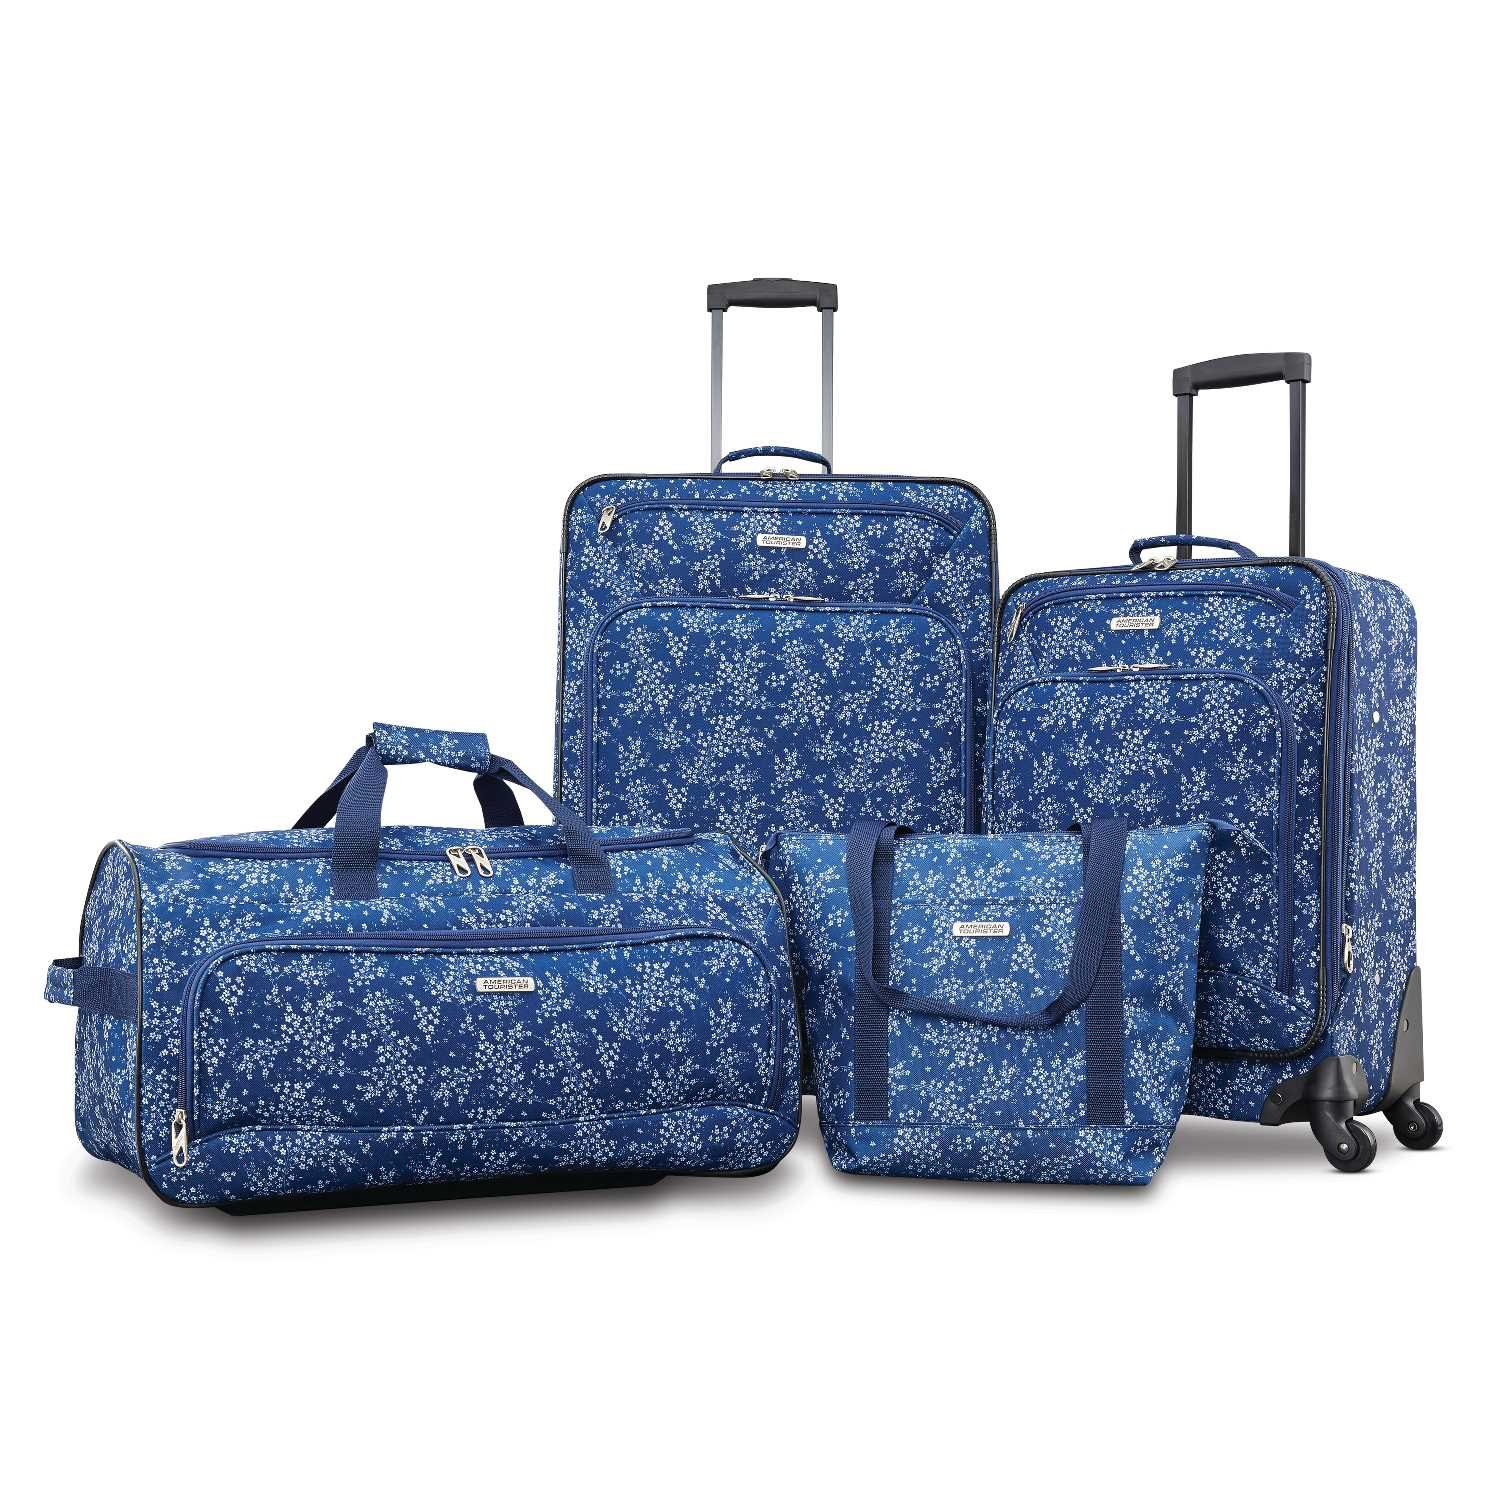 American Tourister Fieldbrook XLT 4pc Set (bb/Wh Dfl/21/25 Spinner), Blue Floral